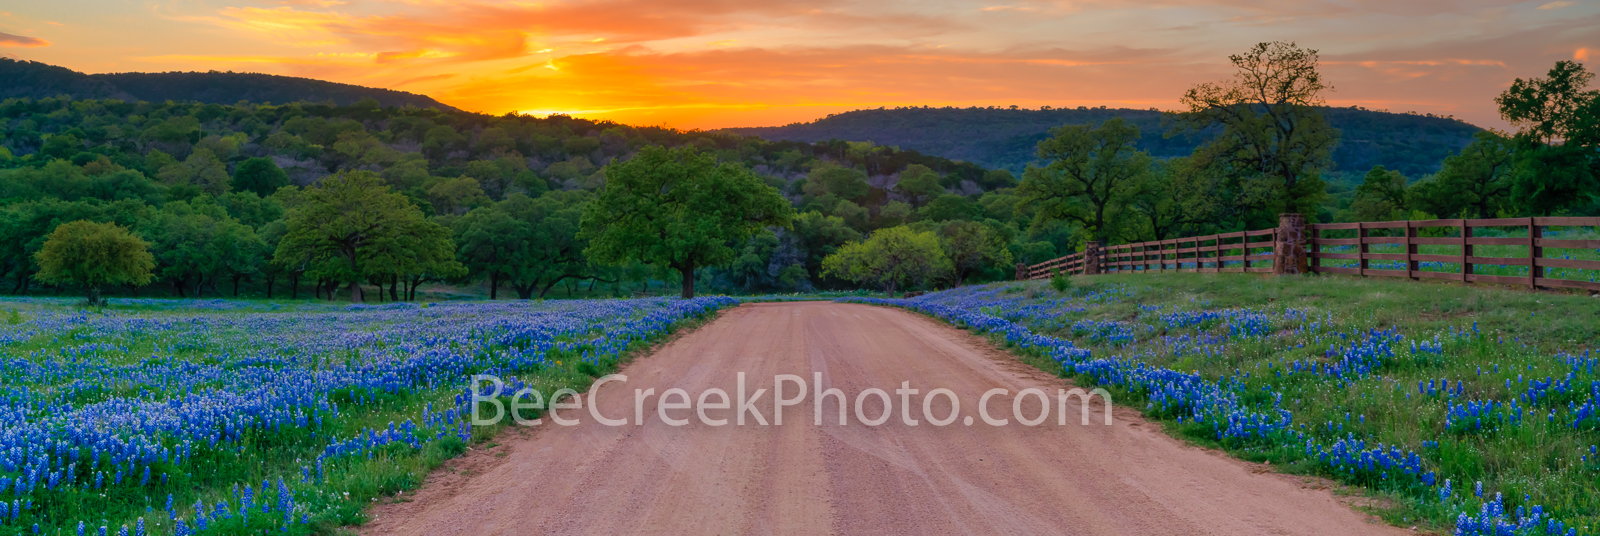 texas, texas bluebonnets, bluebonets, texas hill country, sunset, dirt road, scenery, texas landscape, hill country, texas wildflowers, lupine, hill country landscape, spring, bluebonnet road, wildflo, photo